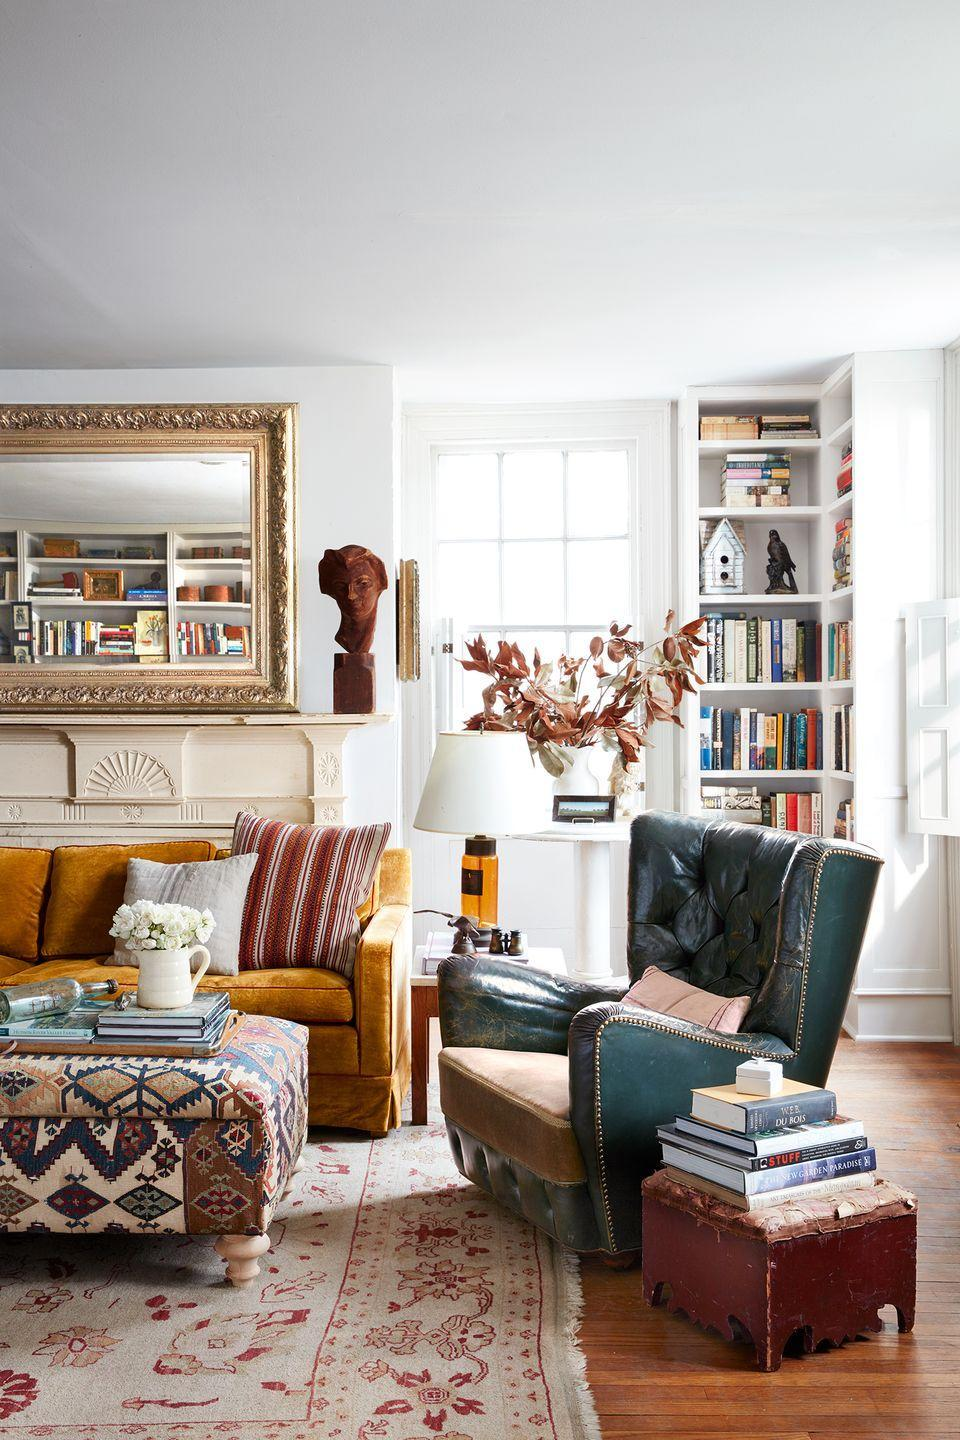 <p>Looking for a way to turn an unused corner into a conversation starter? Go for compact bookshelves, perfect for putting unique decorative accents to good use.</p>